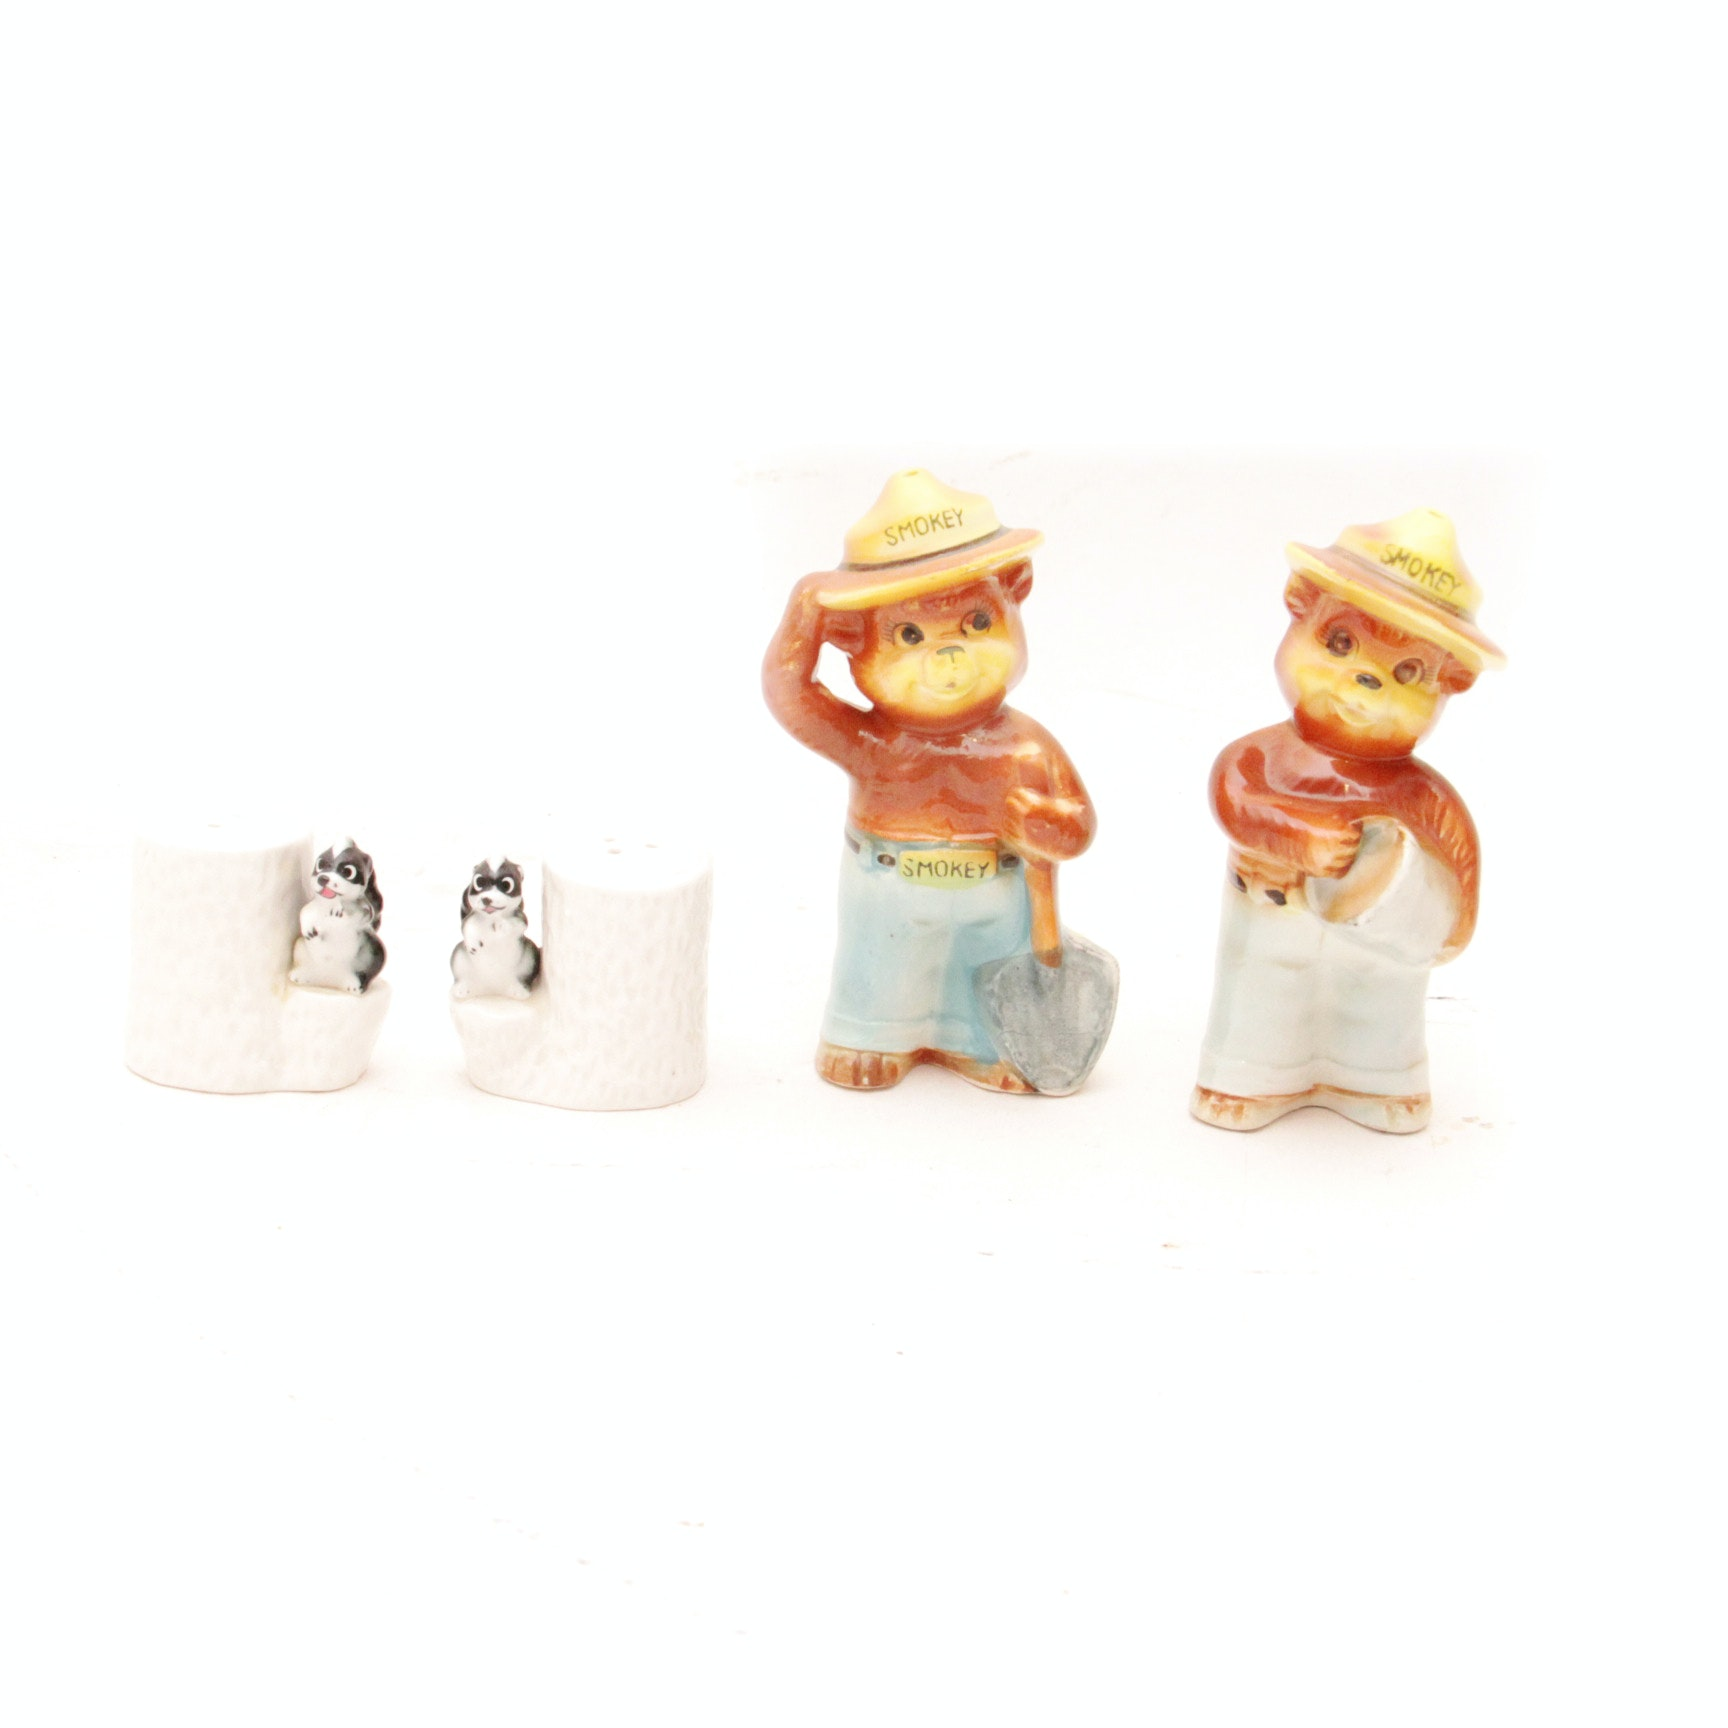 Smokey the Bear Salt and Pepper Shakers and Skunk Shakers